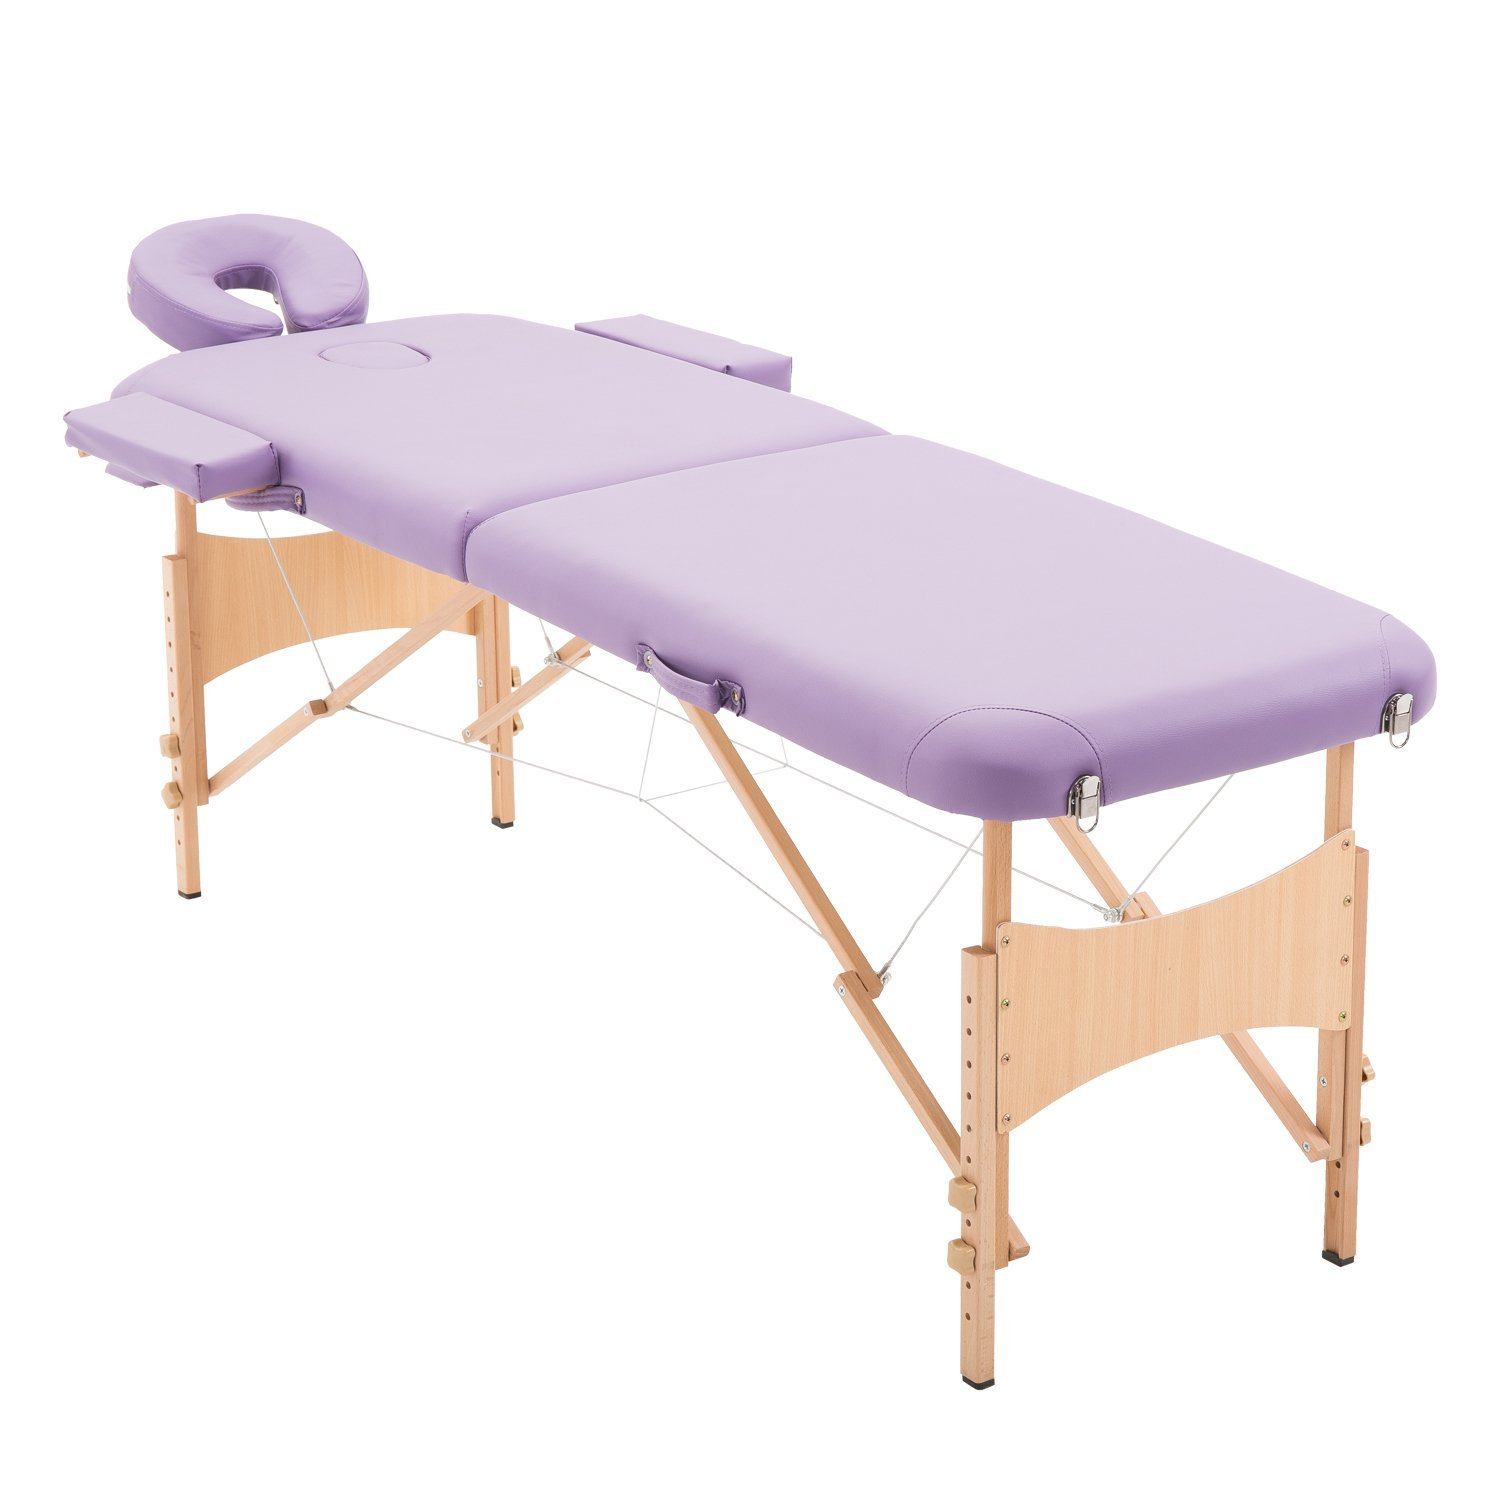 HOMCOM Massage Table Bed Spa Facial Couch Table Adjustable Foldable with Free Carry Case Purple Aosom Canada CA5550-32930231